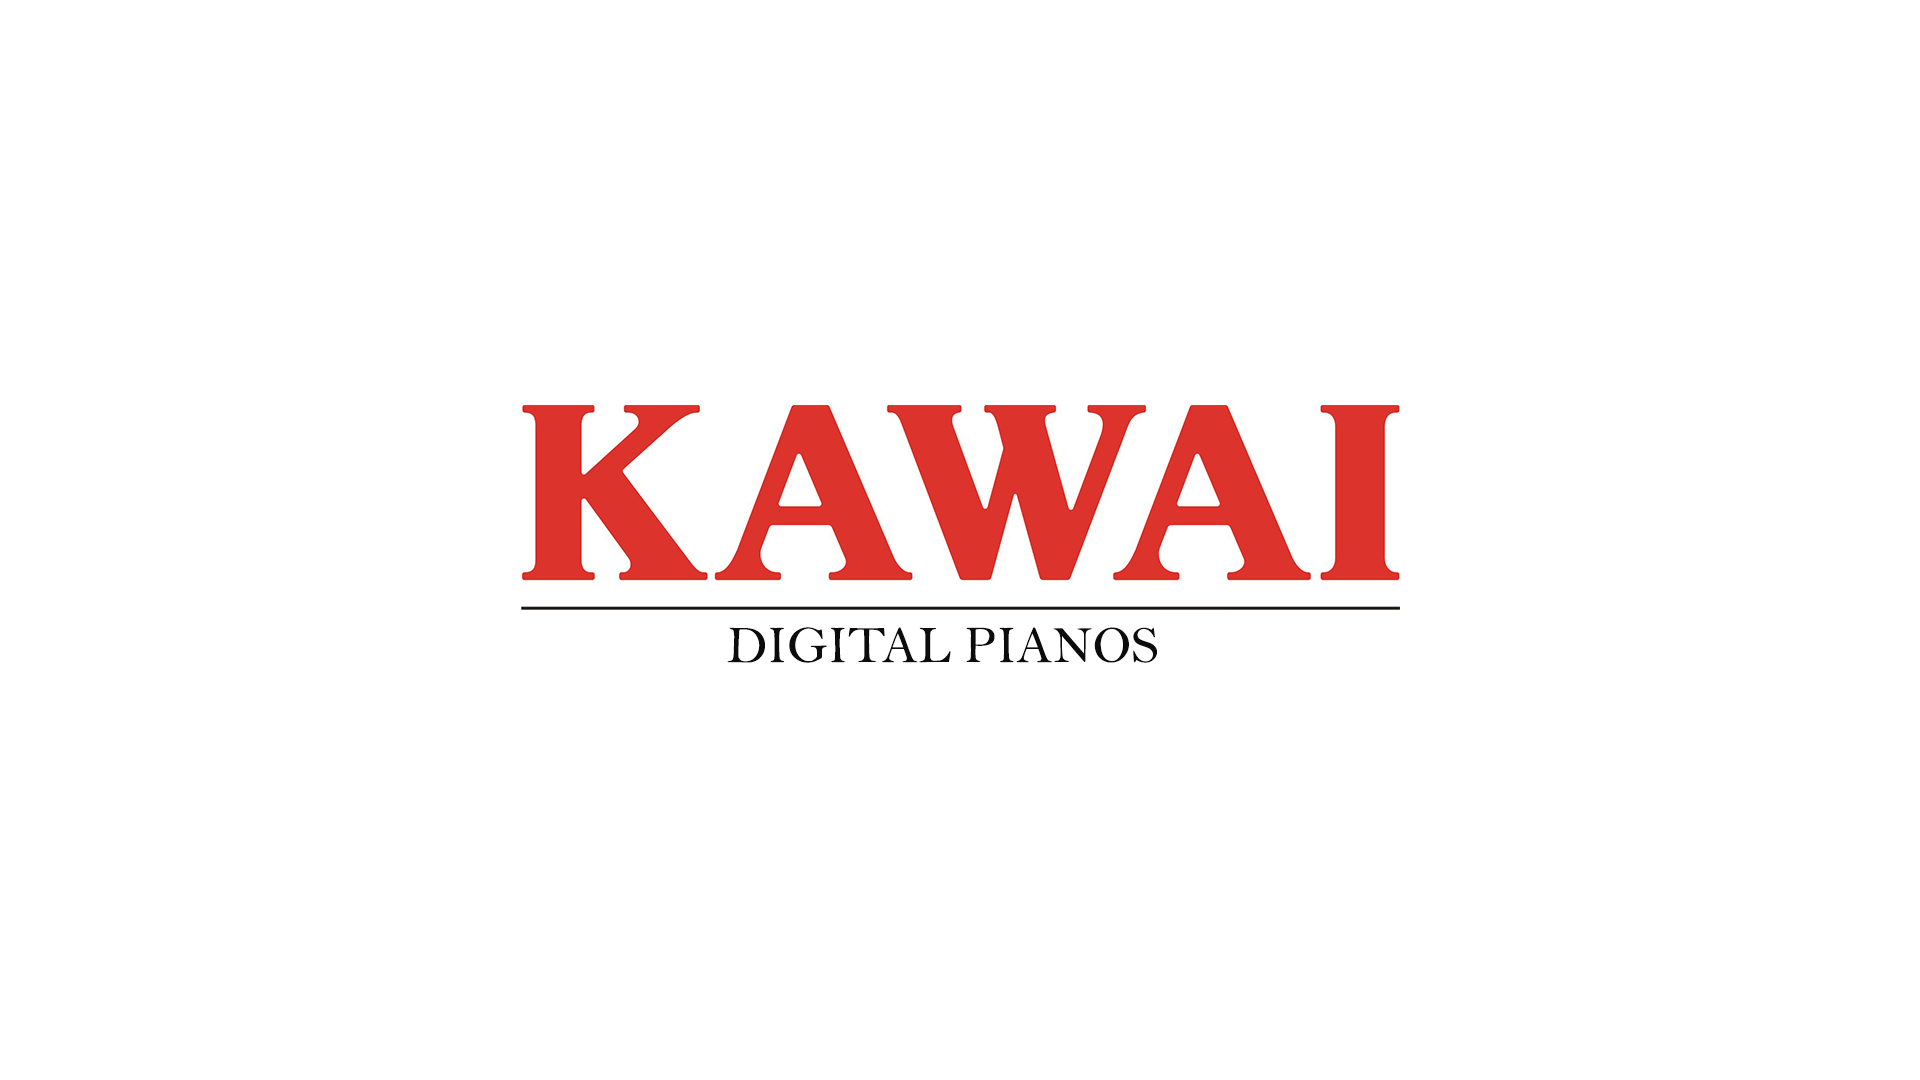 Kawai Digital Pianos Owner's Manuals